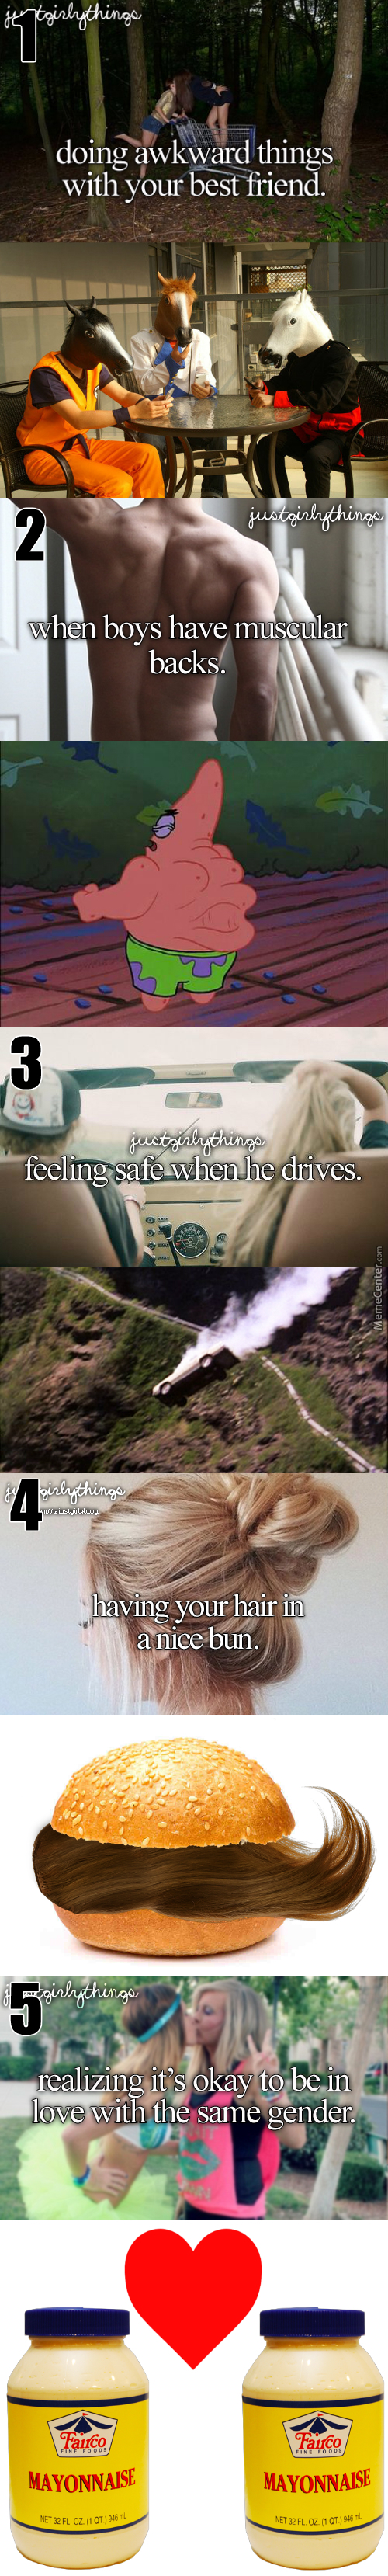 Justgirlythings Compilation 19: What Am I Doing With My Life?